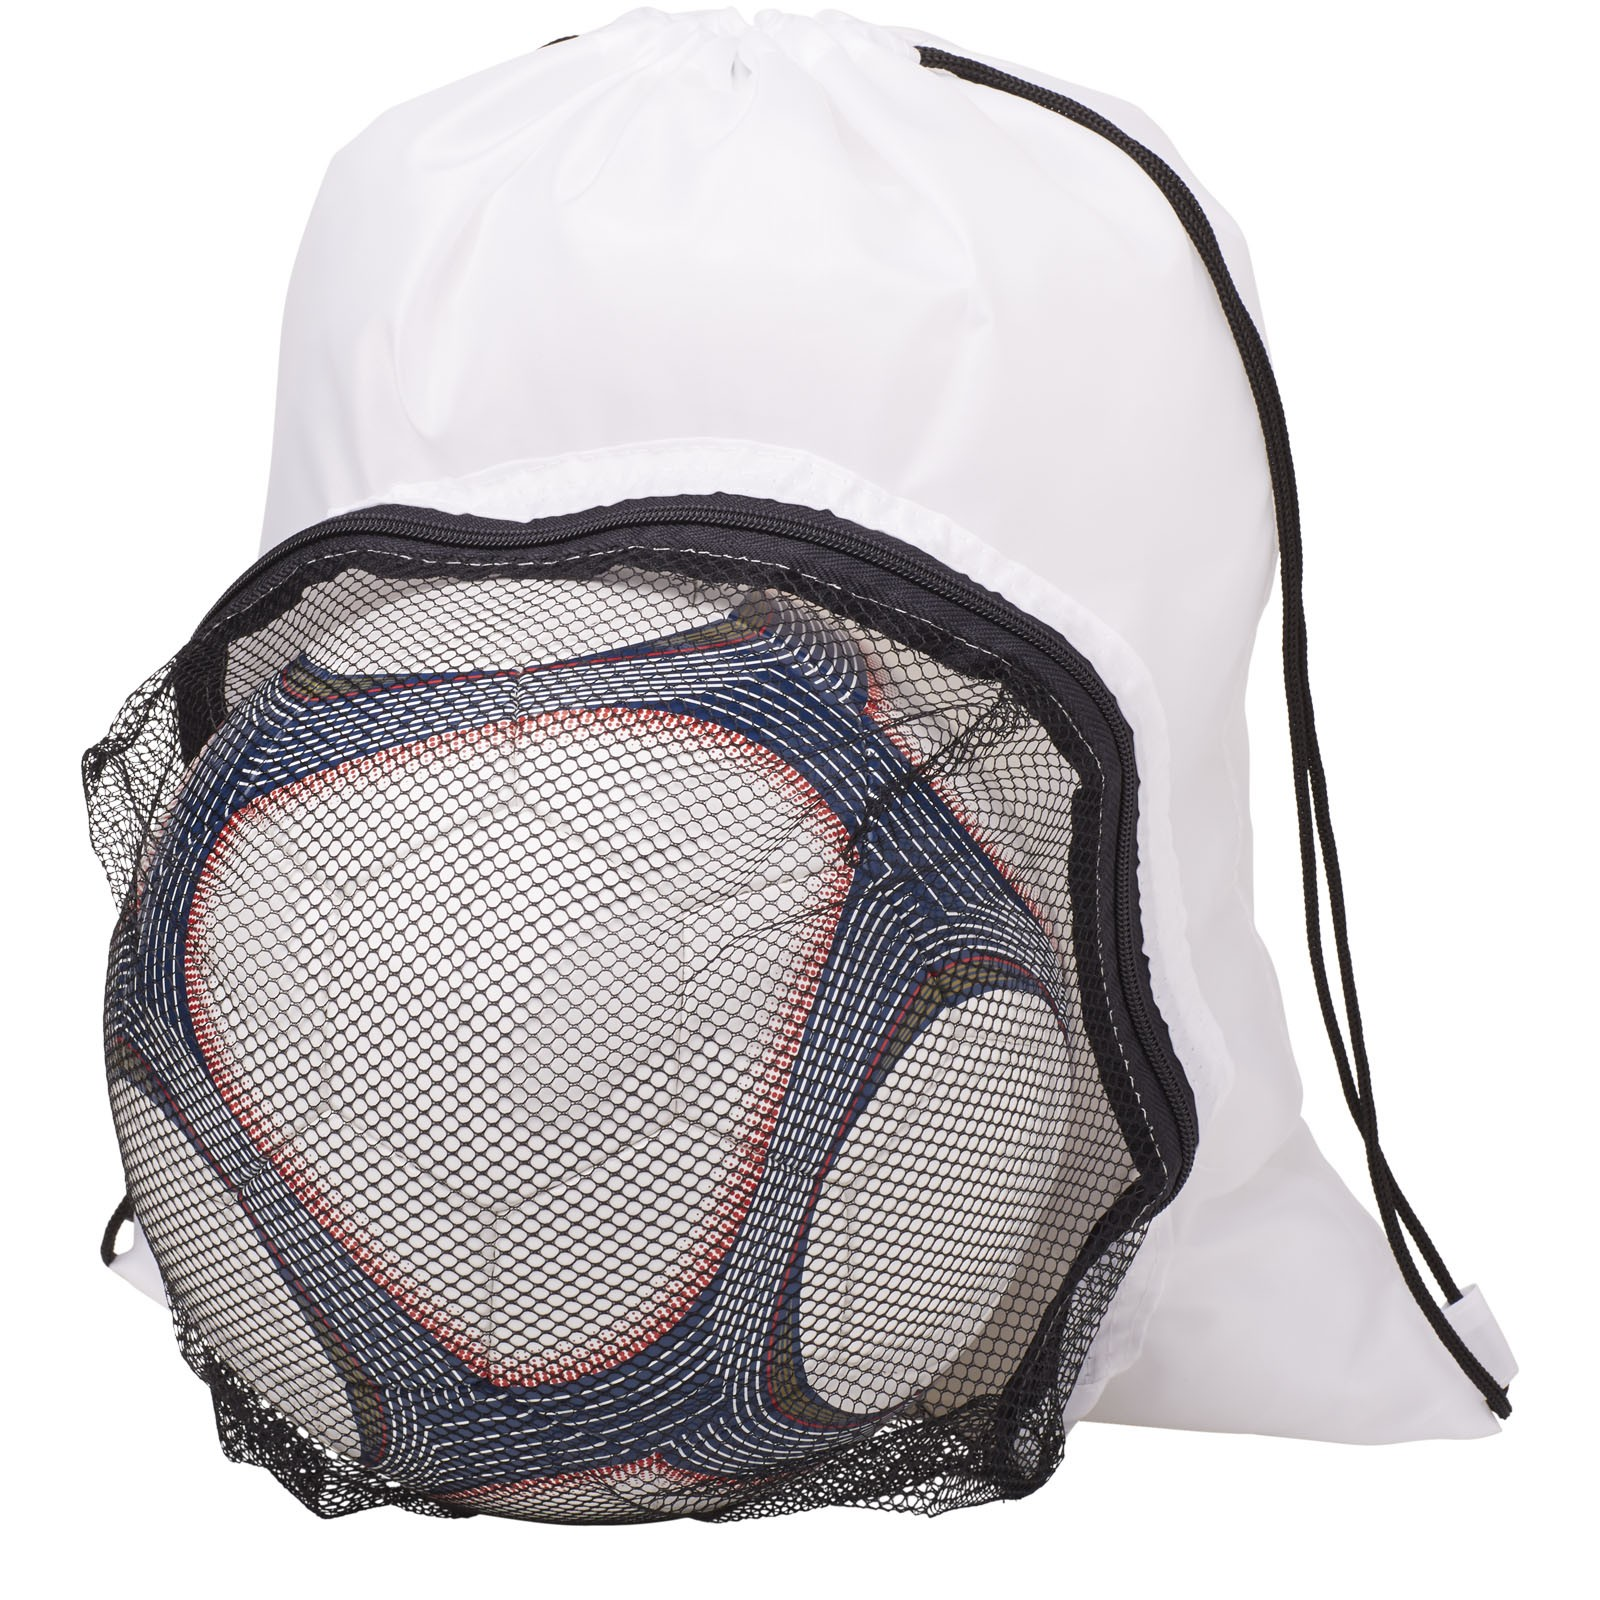 Goal drawstring backpack with football compartment - White